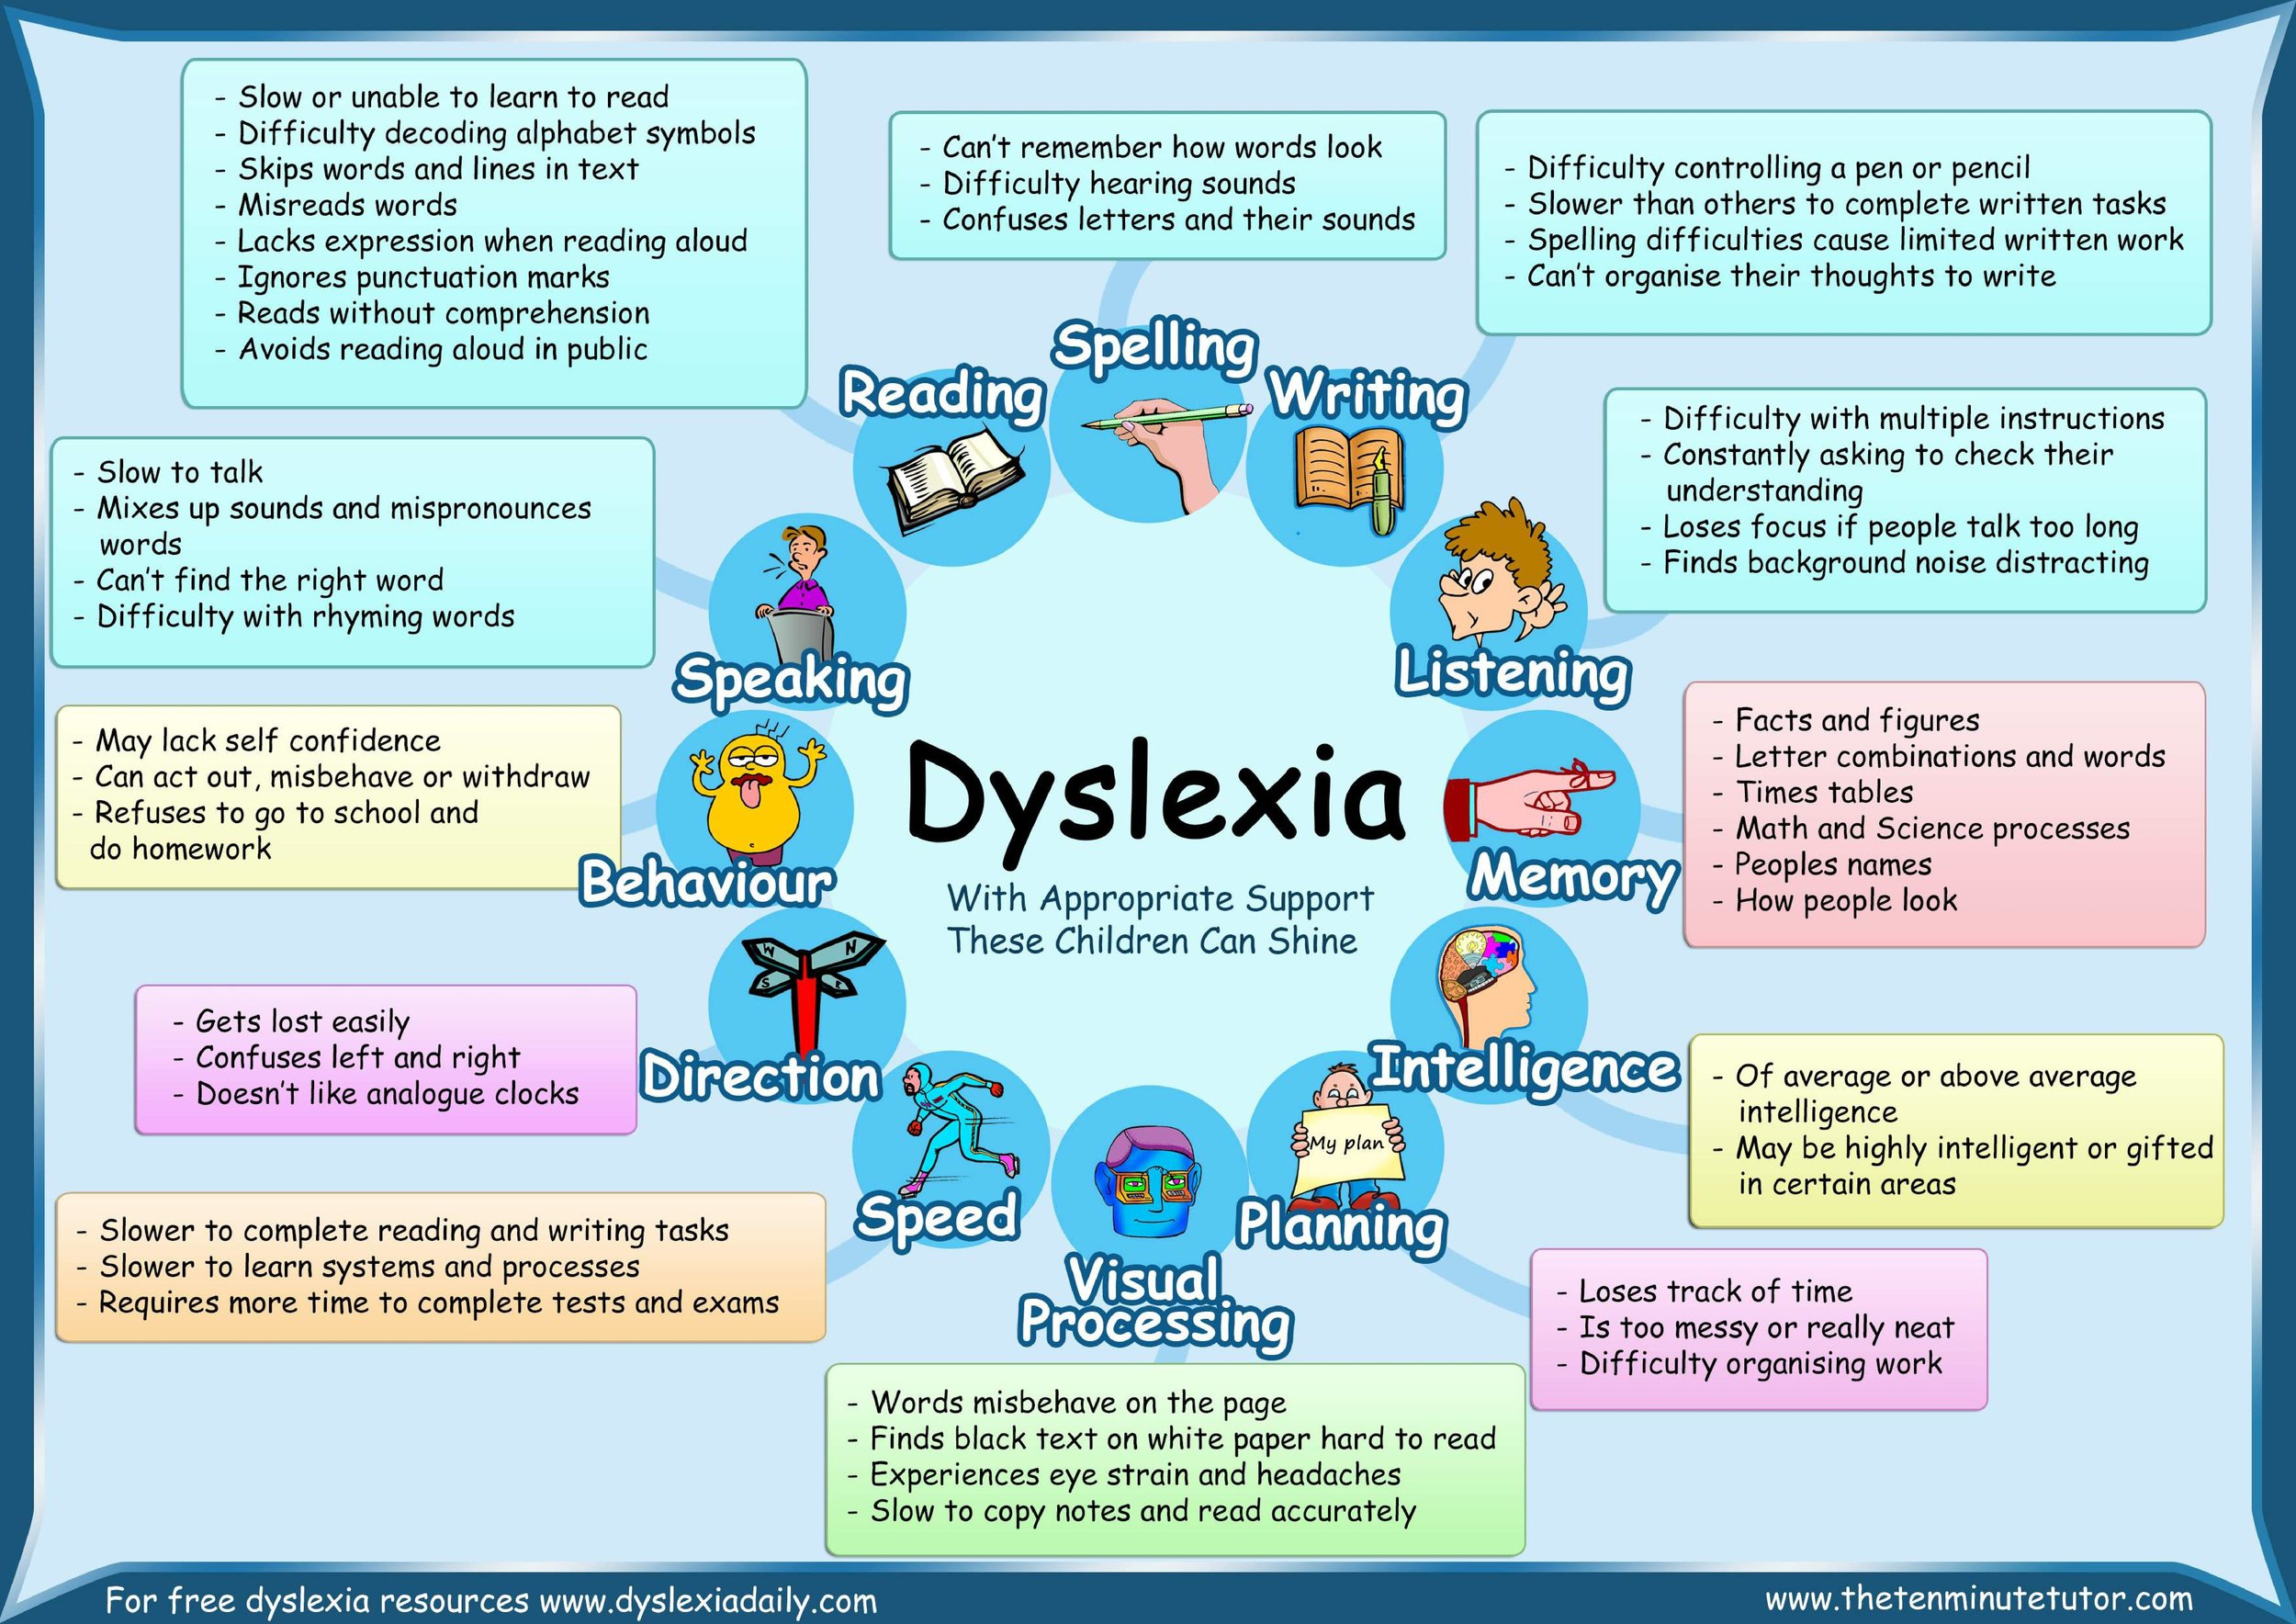 Dyslexia-difficulties-page-001.jpg